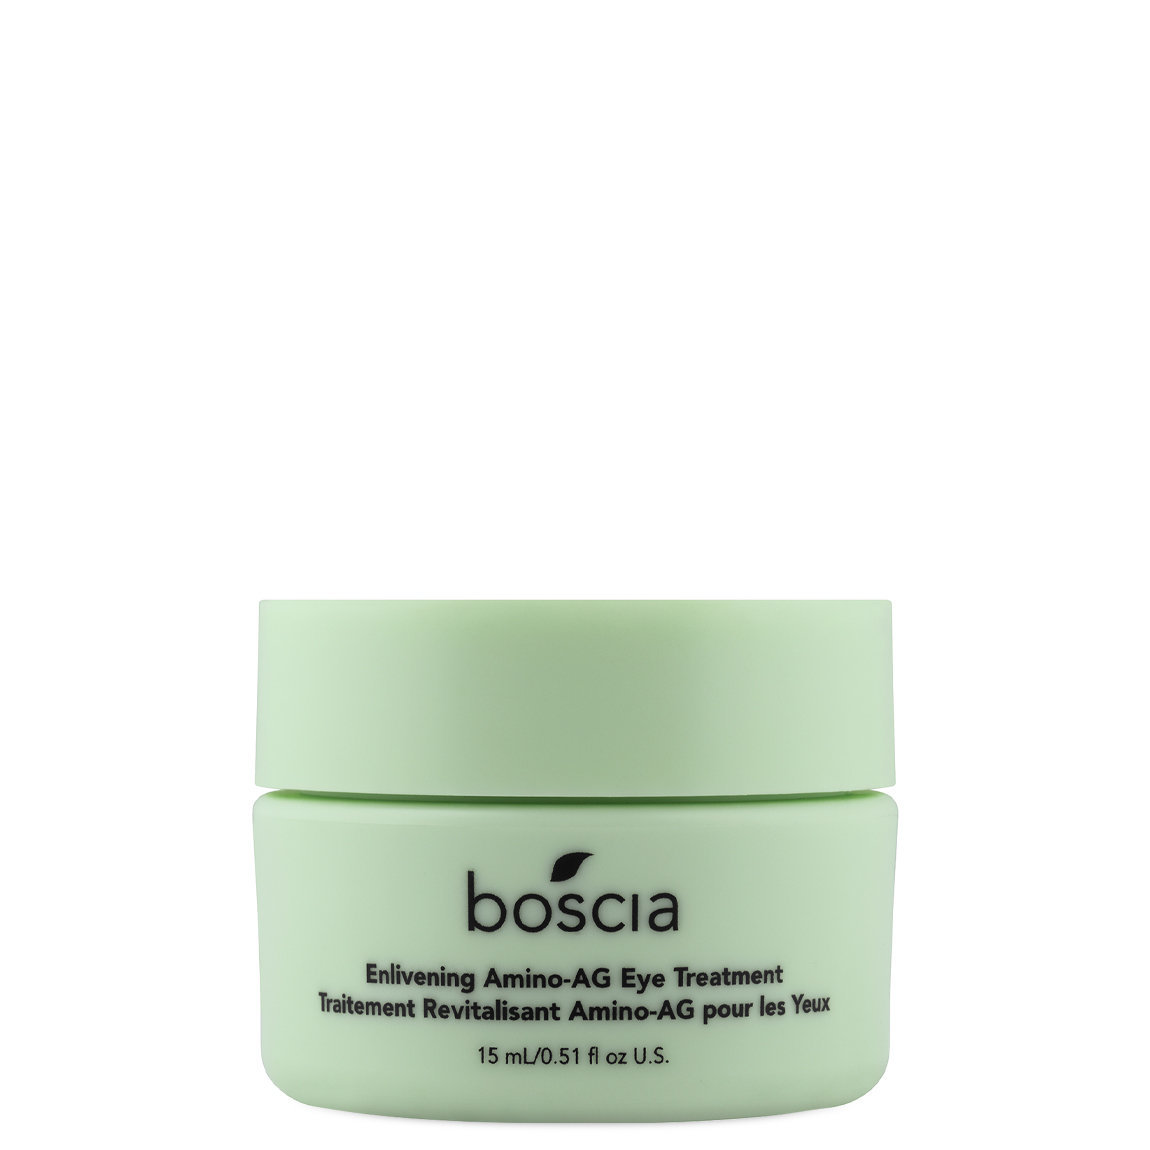 boscia Enlivening Amino-AG Eye Treatment product swatch.